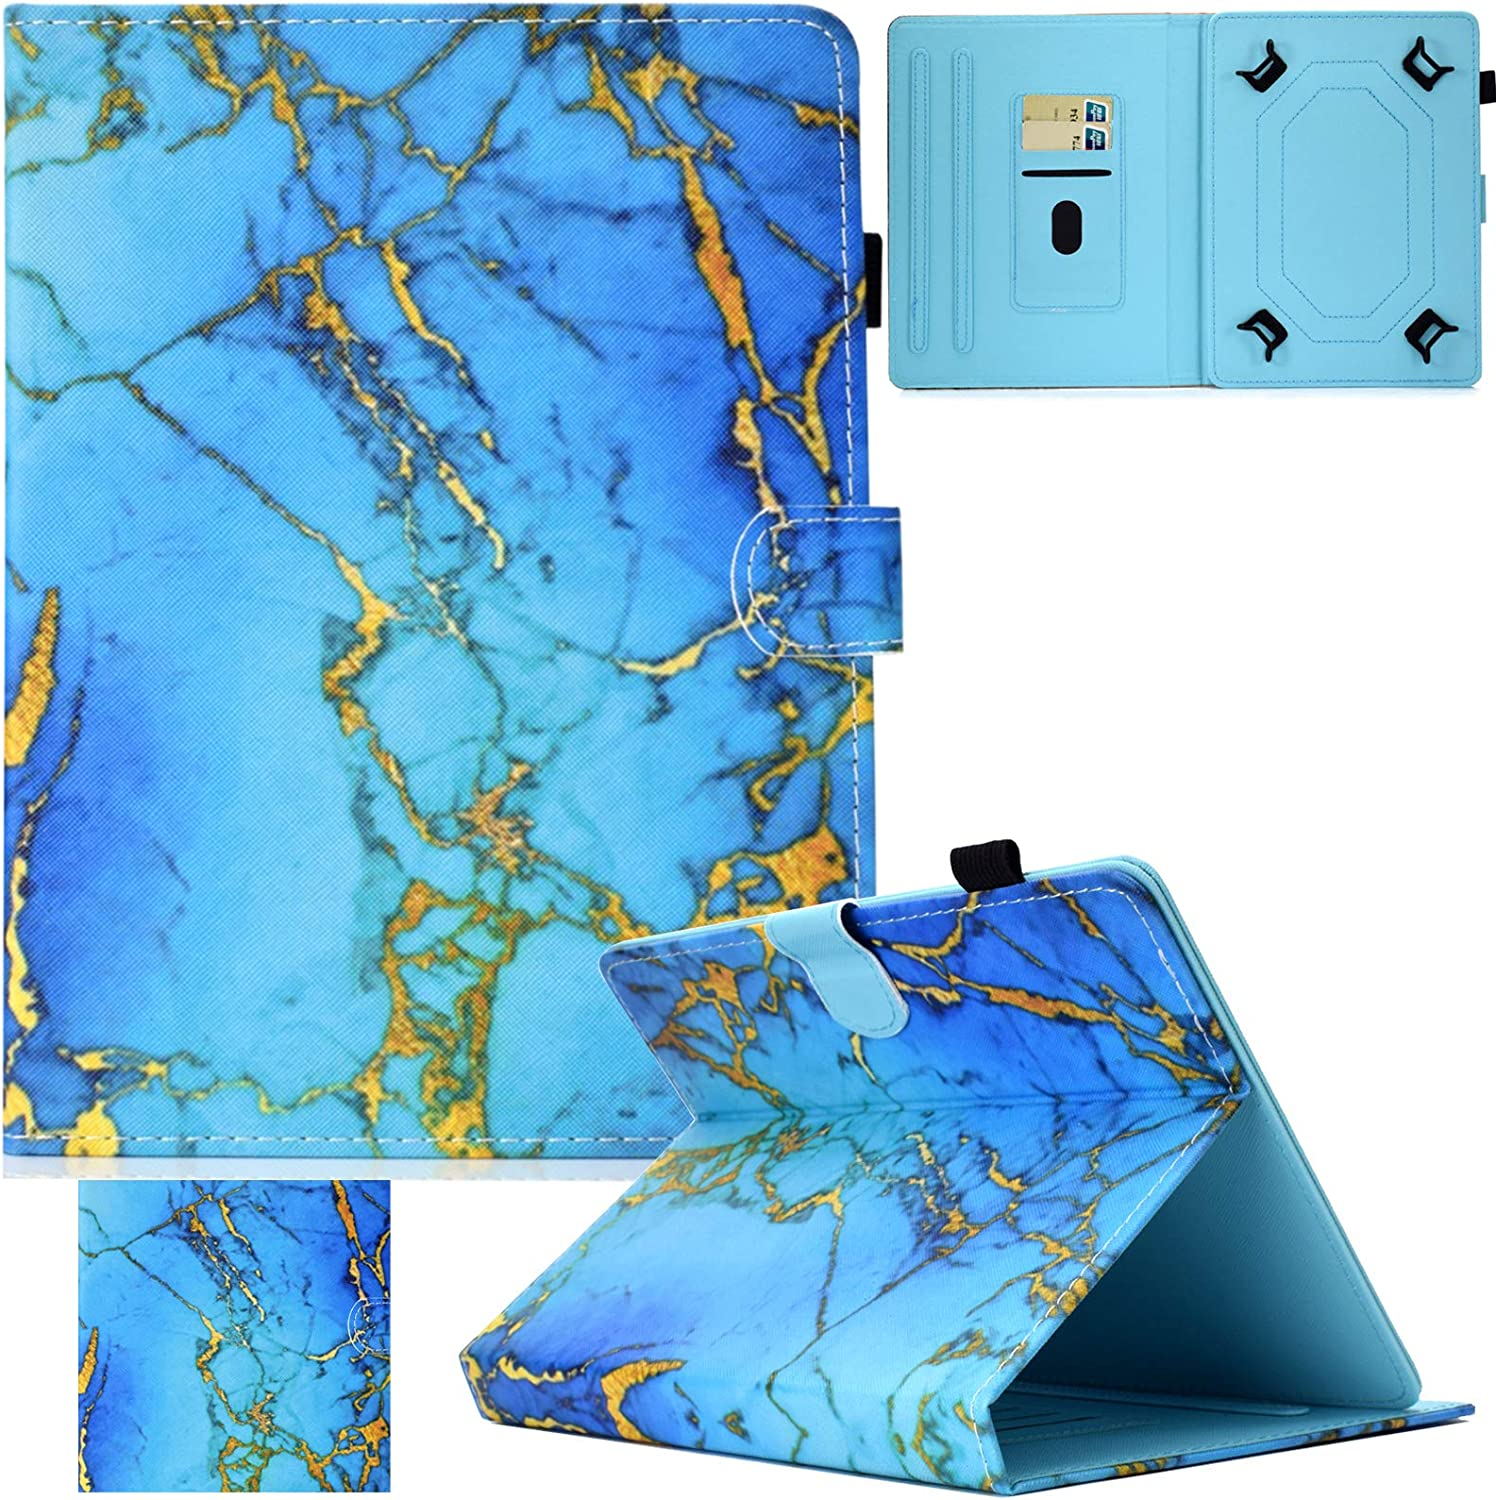 Universal Case for 7.0-7.5 inch Tablet, Artyond PU Leather Magnetic Protect Case with Card Slot Flip Stand Wallet Case for All 7.0-7.5 inch Kindle, Android, Galaxy Tab, Windows Tablet (Blue Marble)